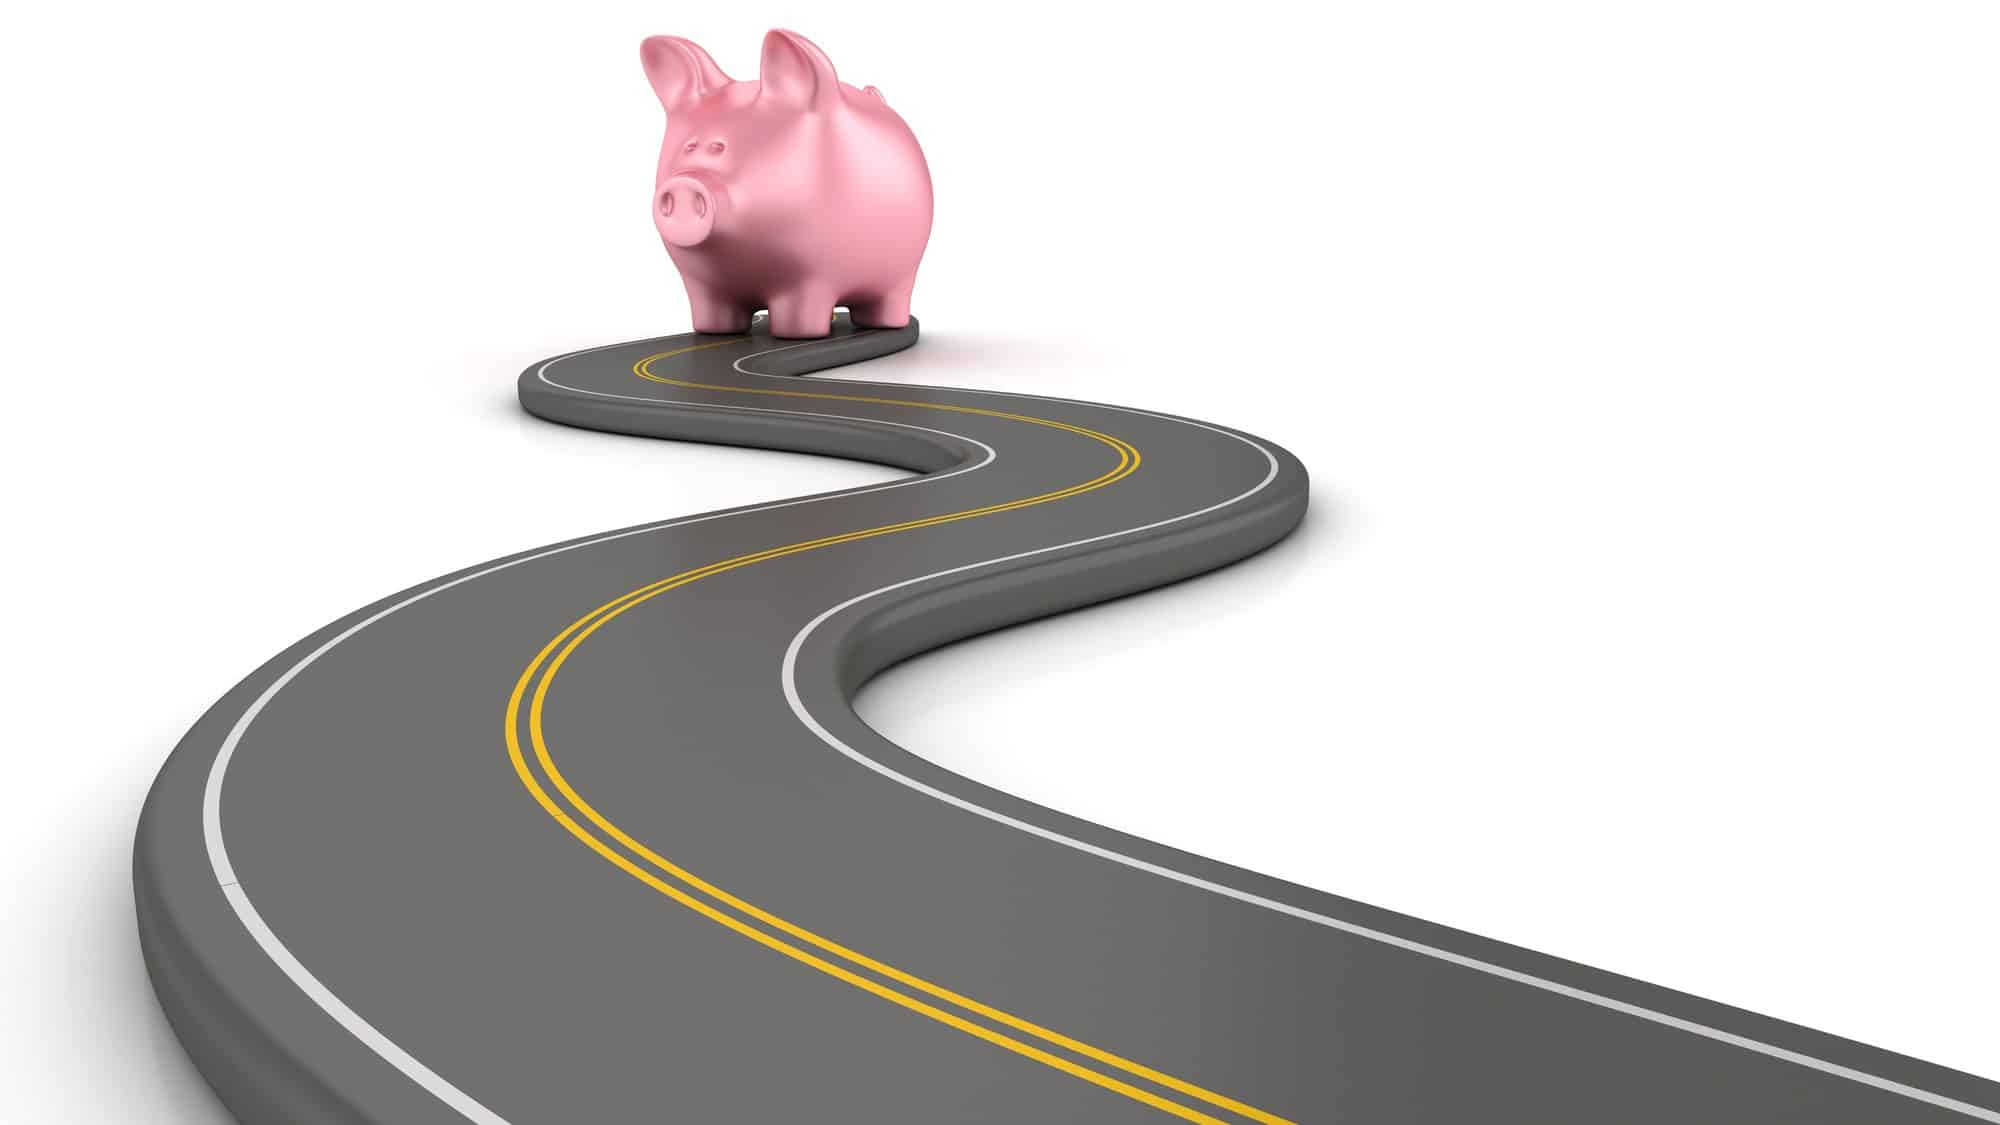 asx share price represented by piggy bank at end of winding road